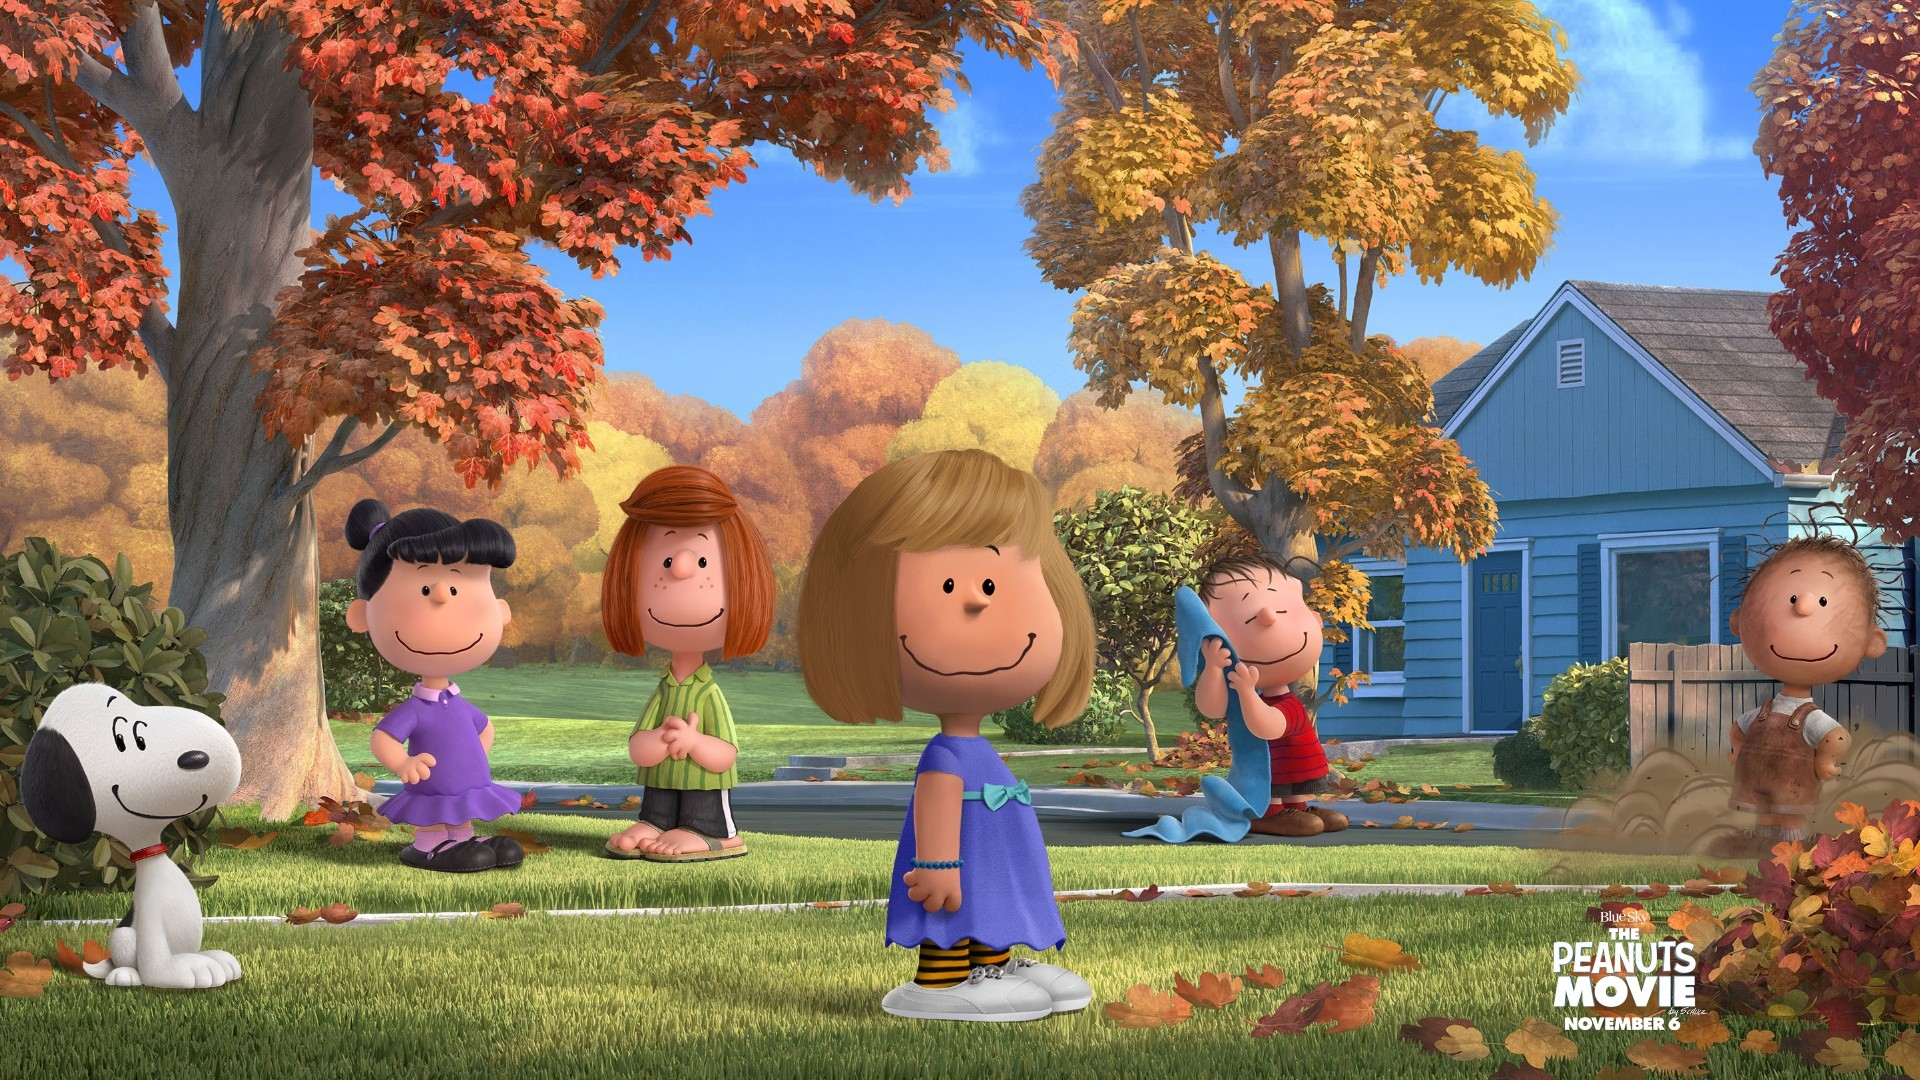 Try The Peanutize Me Character Creator For THE PEANUTS MOVIE – We Are Movie  Geeks